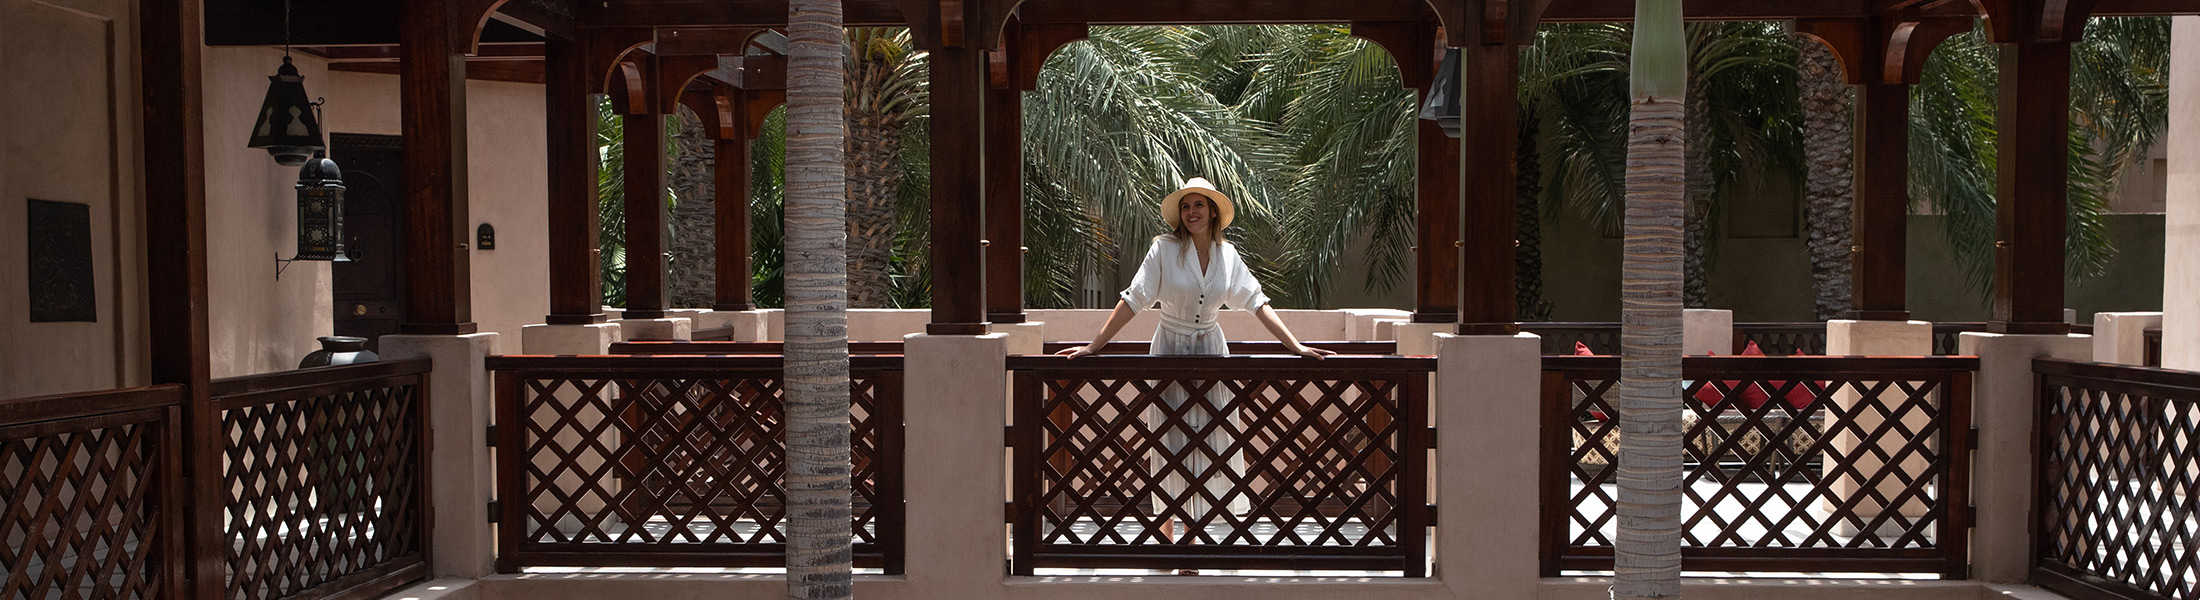 Woman on the elevated walkway at Jumeirah Dar Al Masyaf